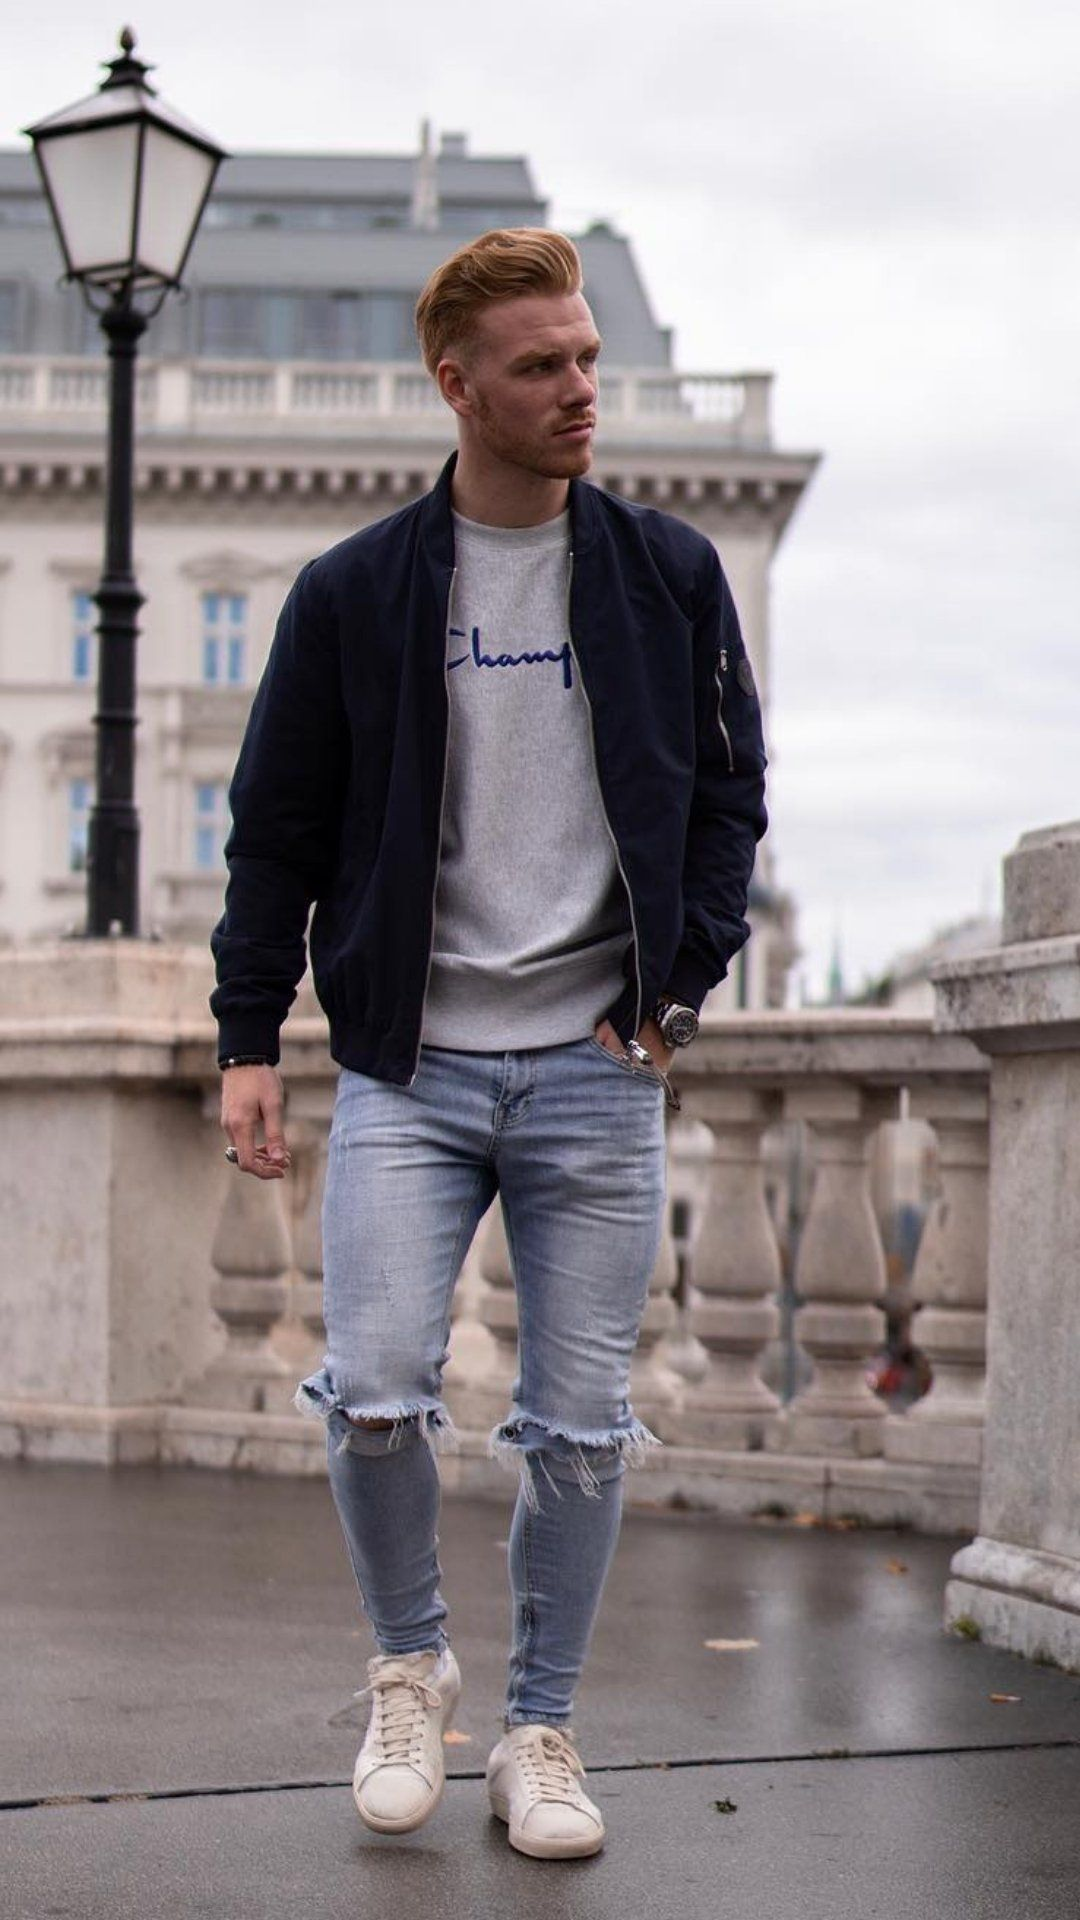 5 Bomber Jacket Outfits To Wear Every Fall Weekends Bomber Jacket Outfit Mens Casual Outfits Street Casual Men [ 1920 x 1080 Pixel ]